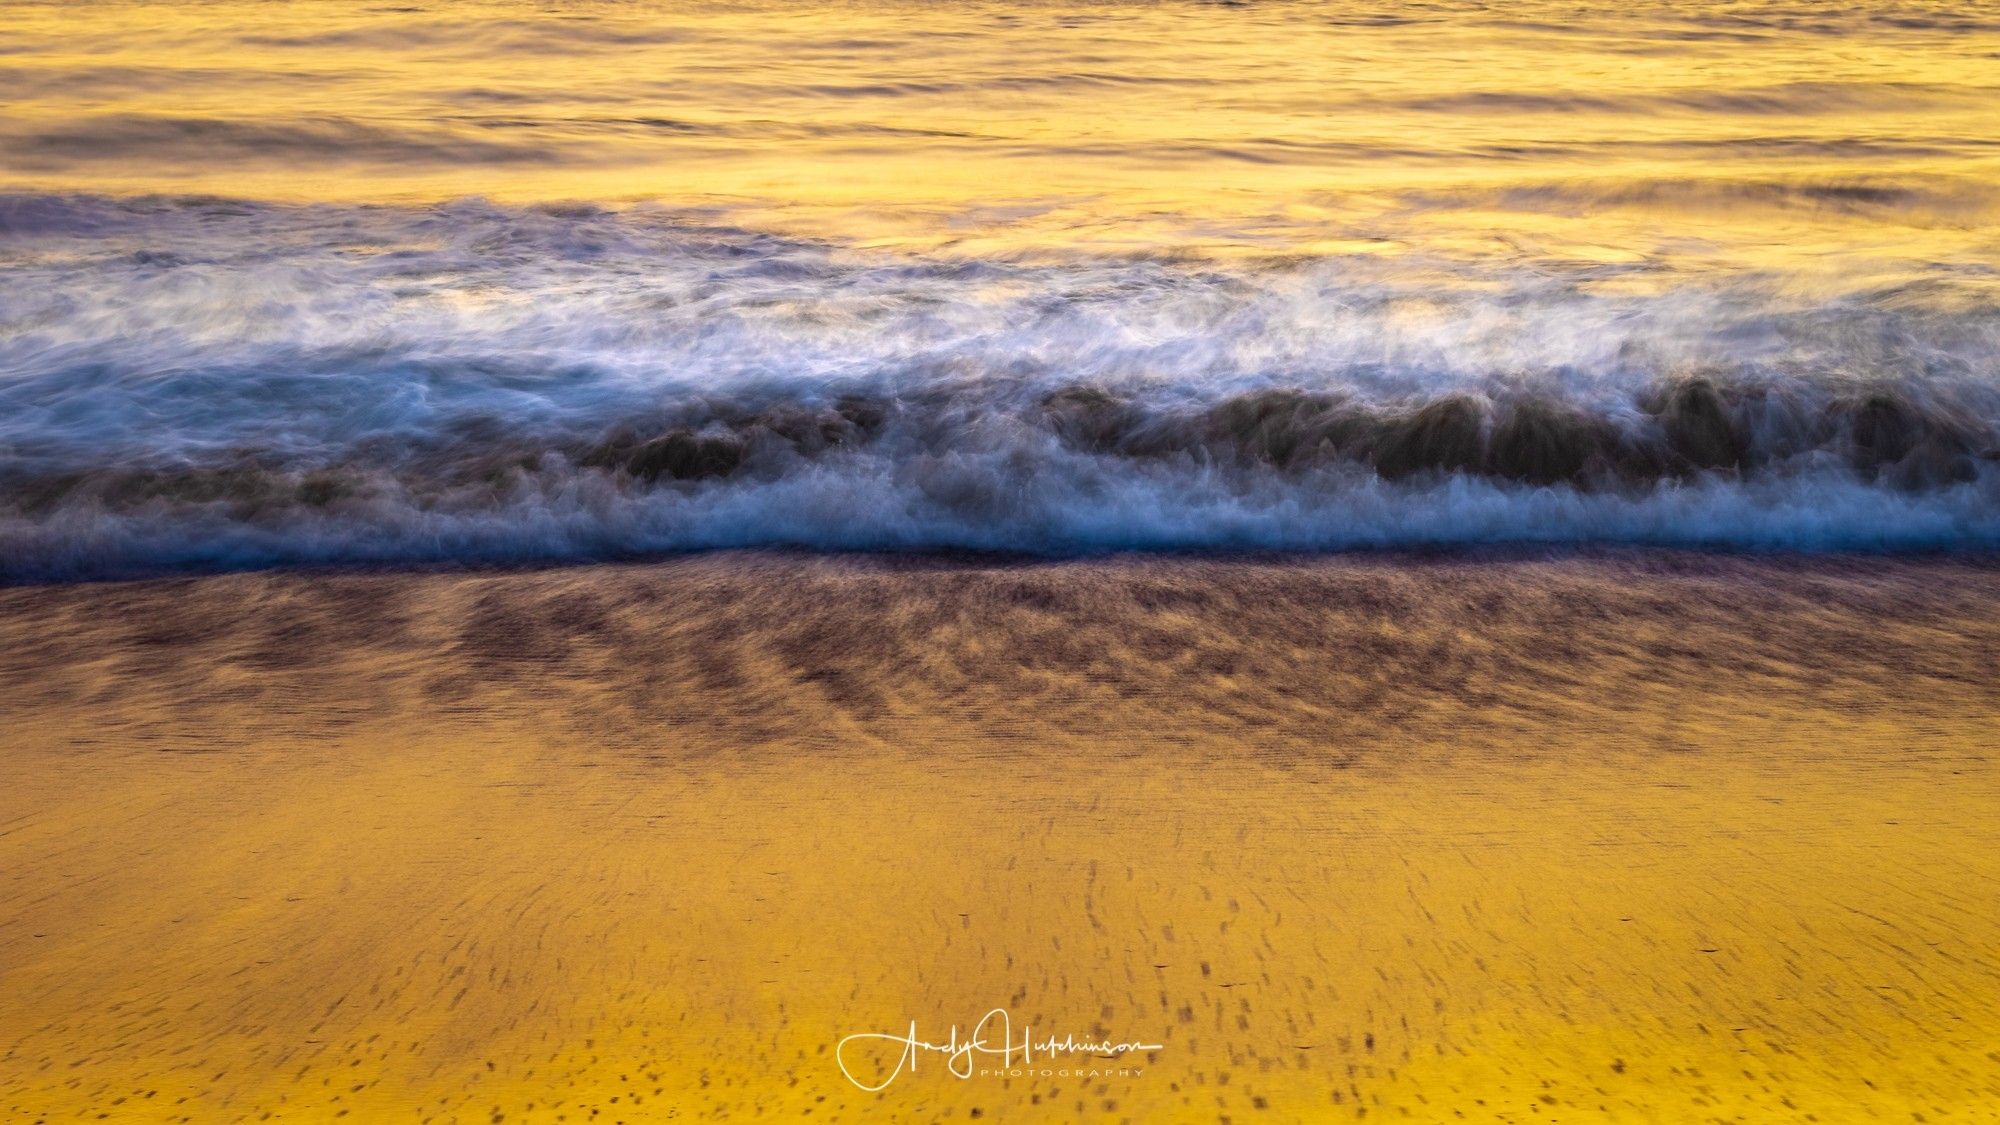 Golden sands lit by the early colour.